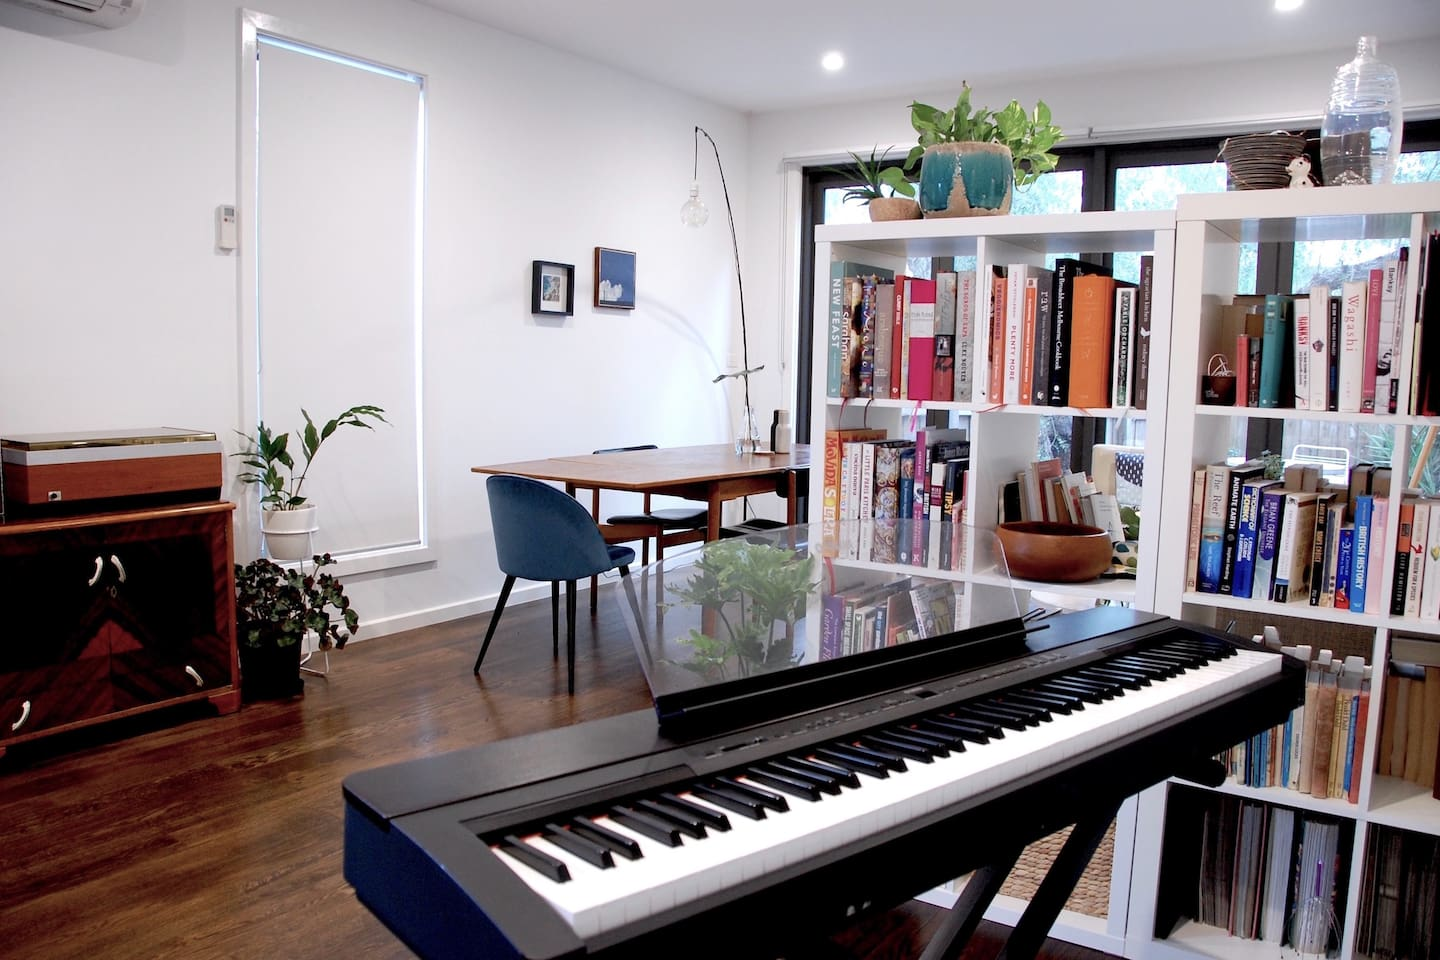 Creative & light filled home. Perfect for travellers or work trips.